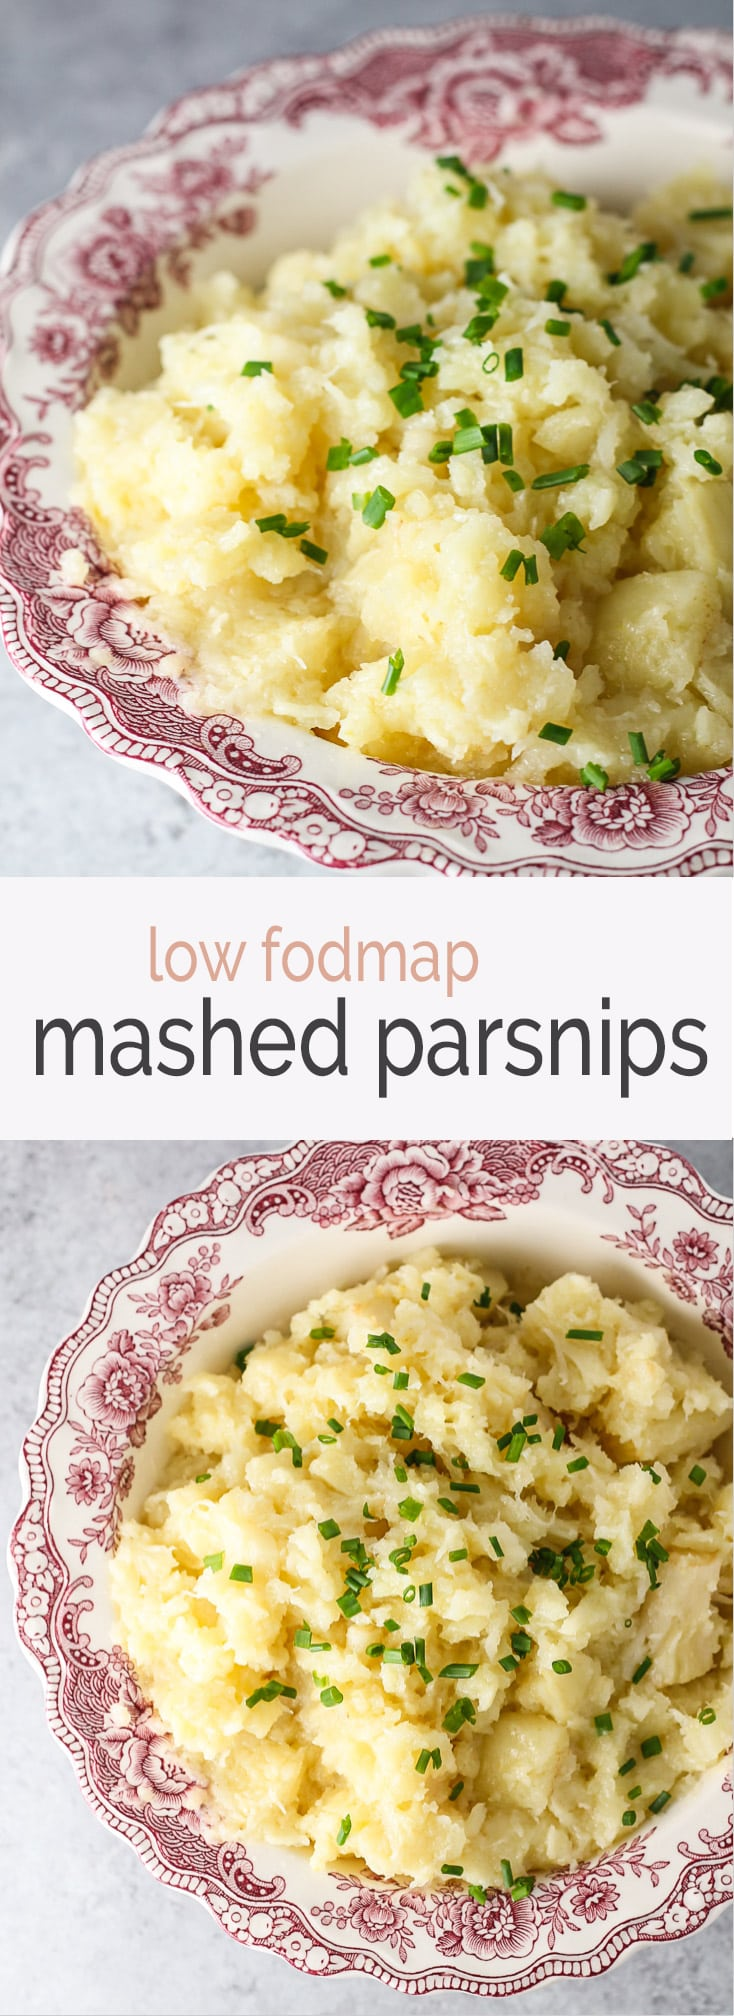 Move over potatoes, these Low Fodmap Mashed Parsnips are ready to shine. This simple and scrumptious side dish is a delicious way to get a healthy dose of starchy carbs.